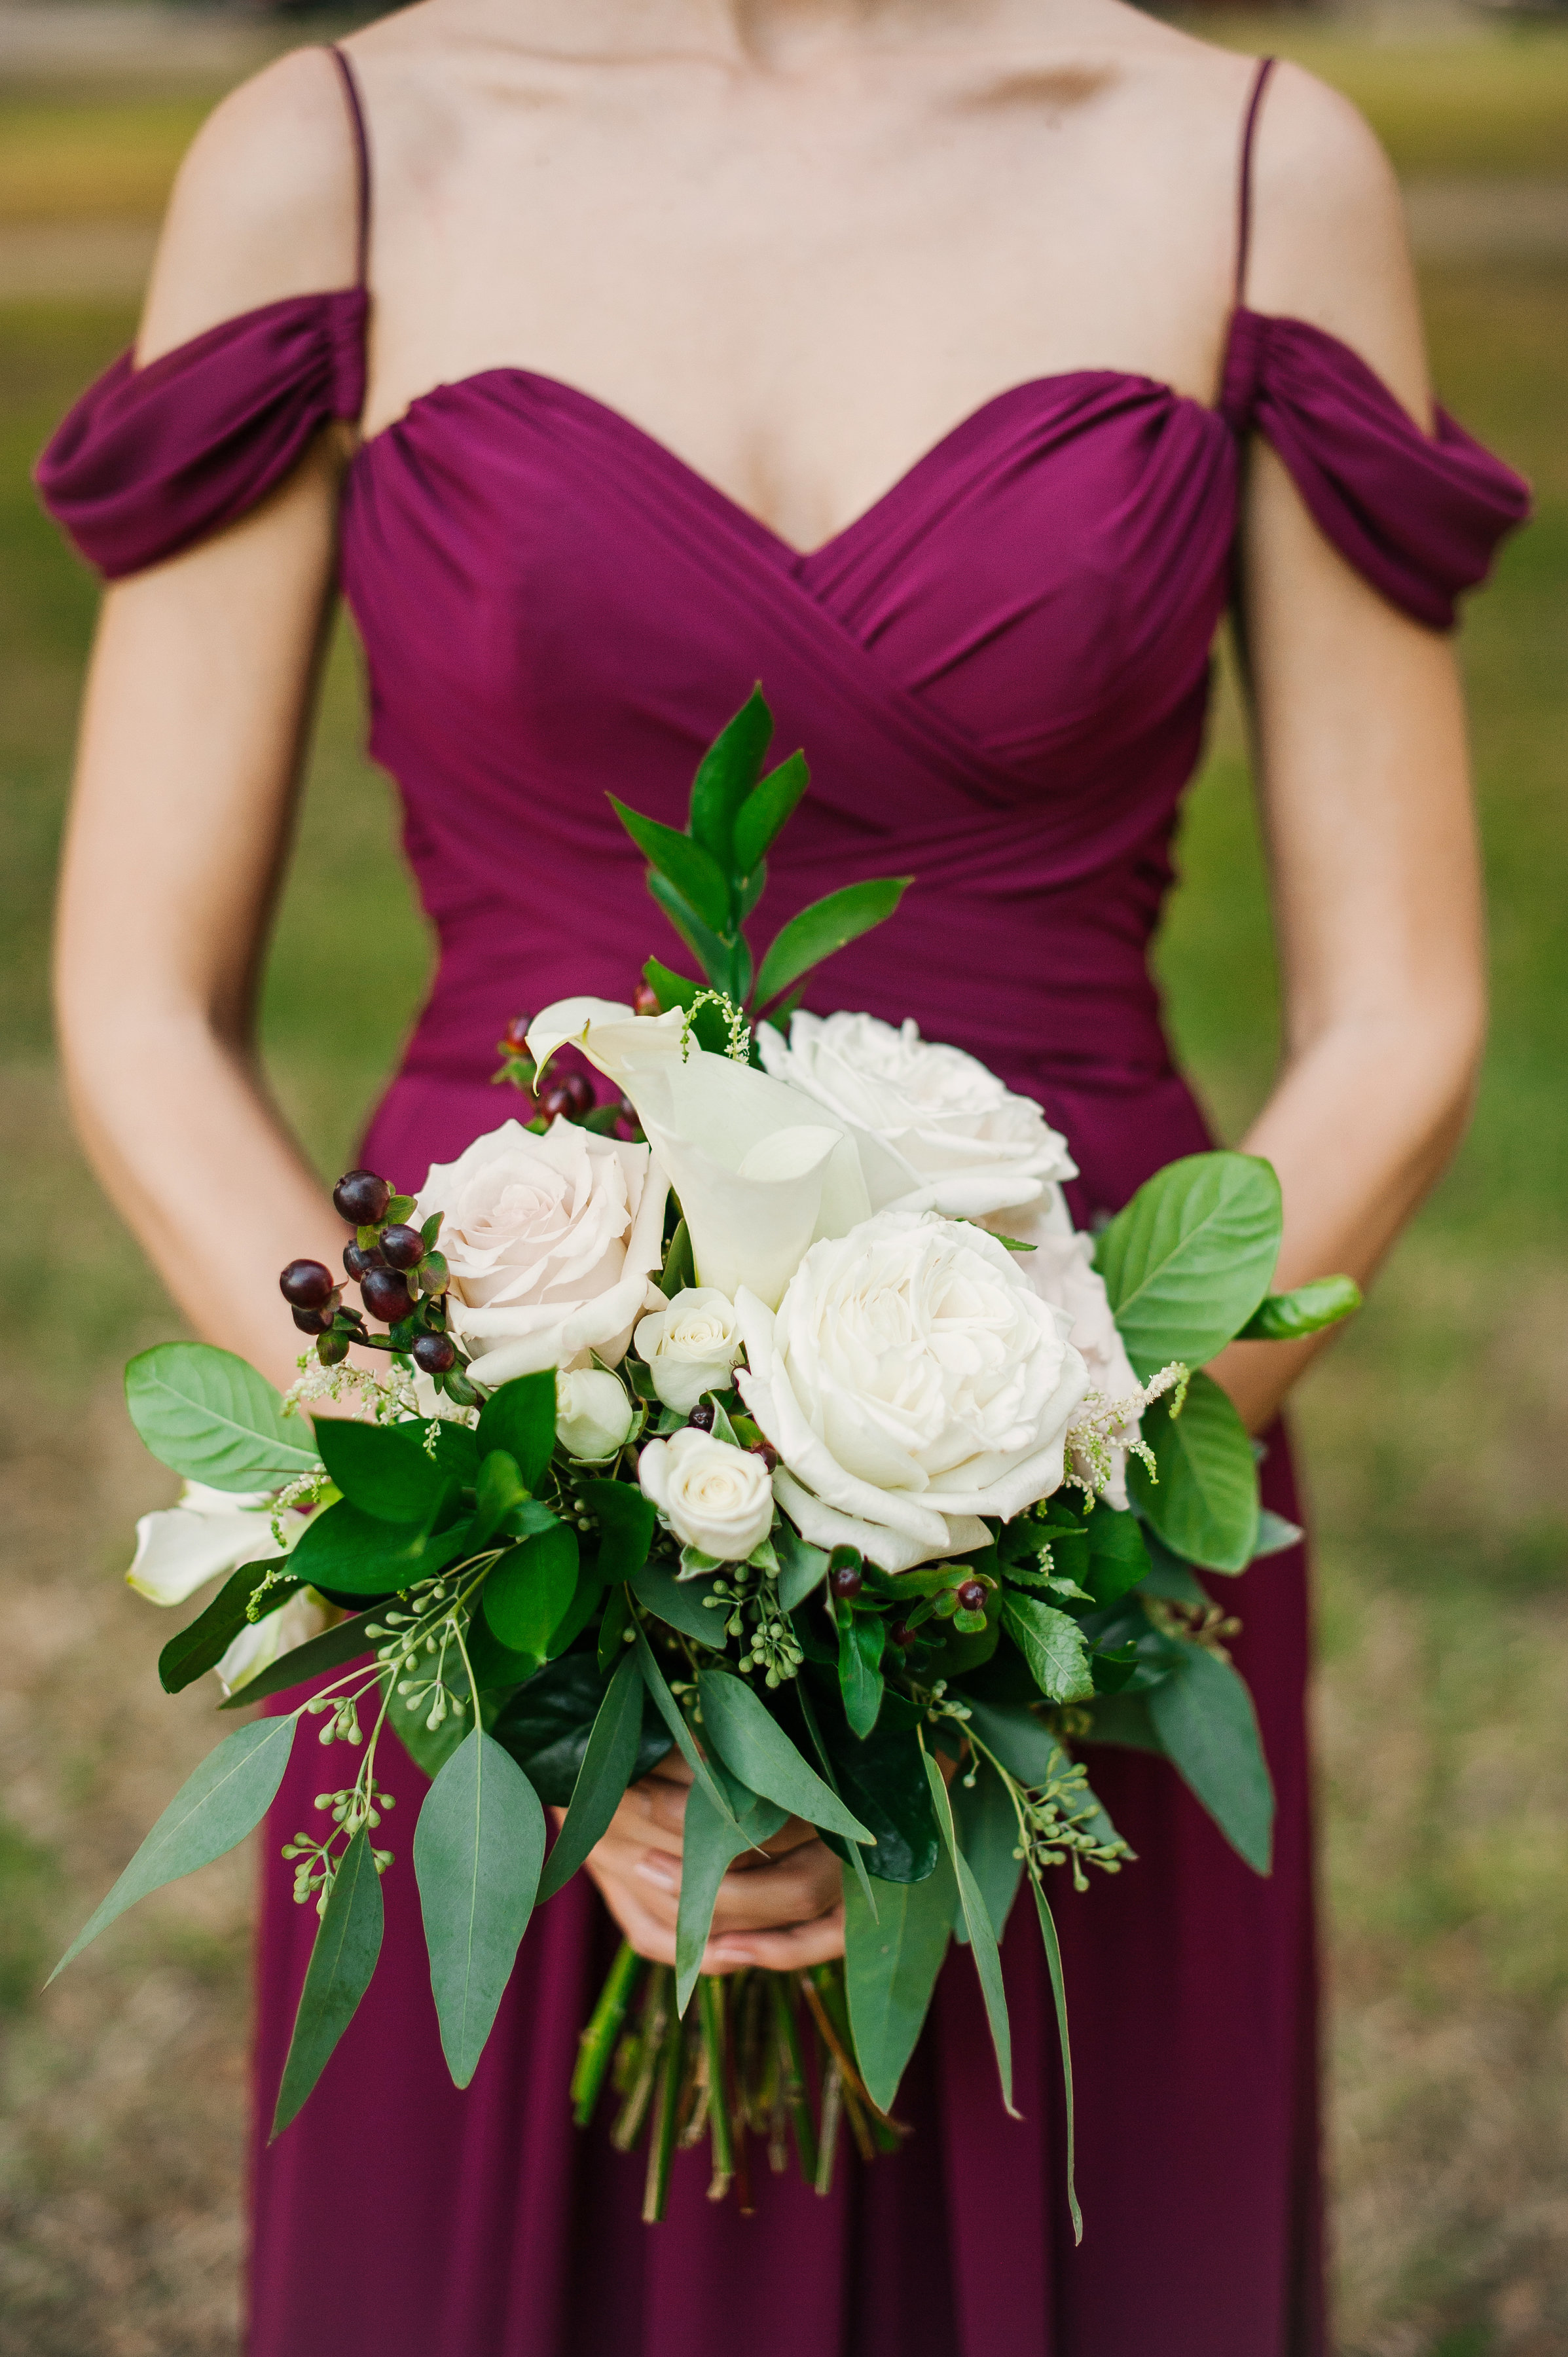 The bridesmaids bouquets were a mix of garnet and greenery with touches of ivory and blush florals.